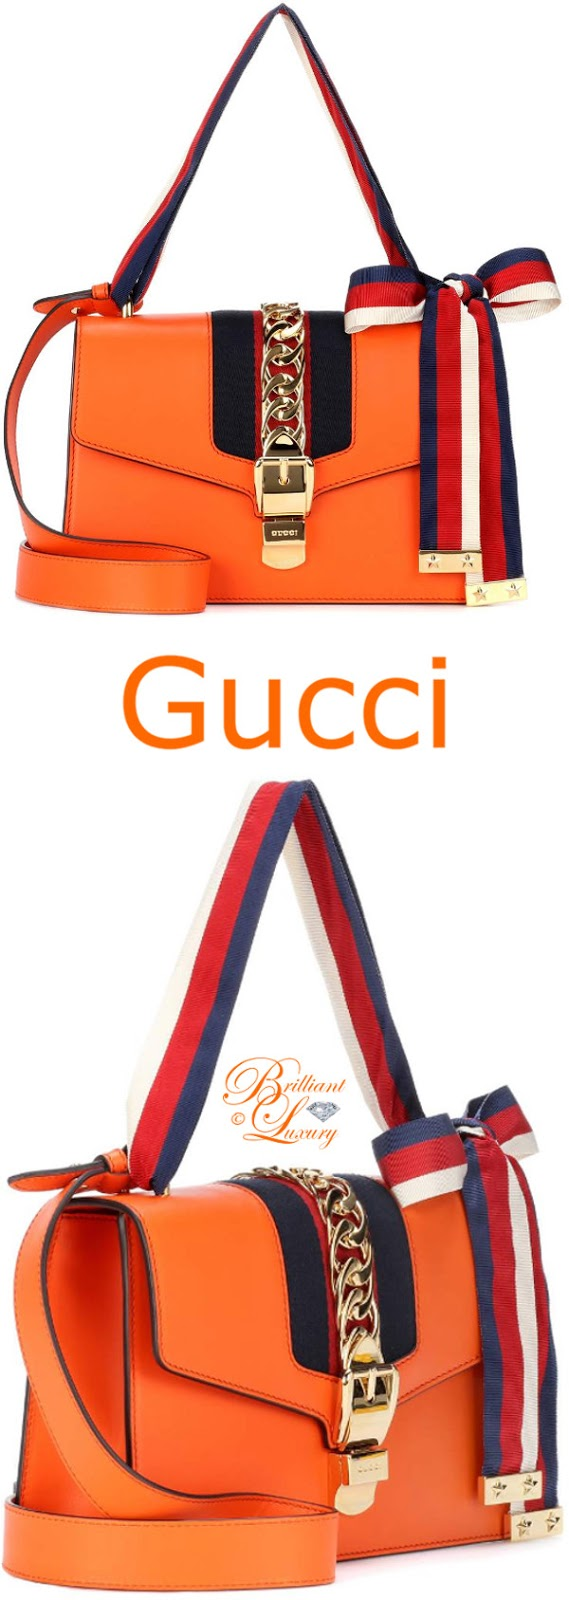 Brilliant Luxury ♦ Gucci Sylvie leather shoulder bag #orange